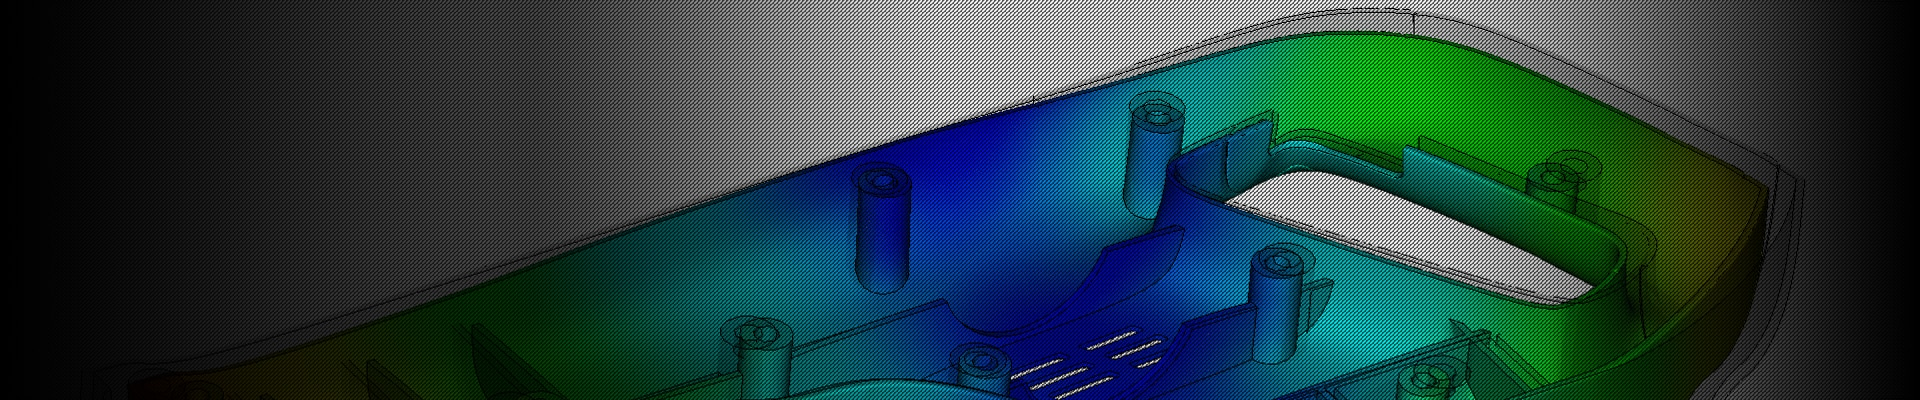 Causes Of Warpage Plastic Part Quality Autodesk